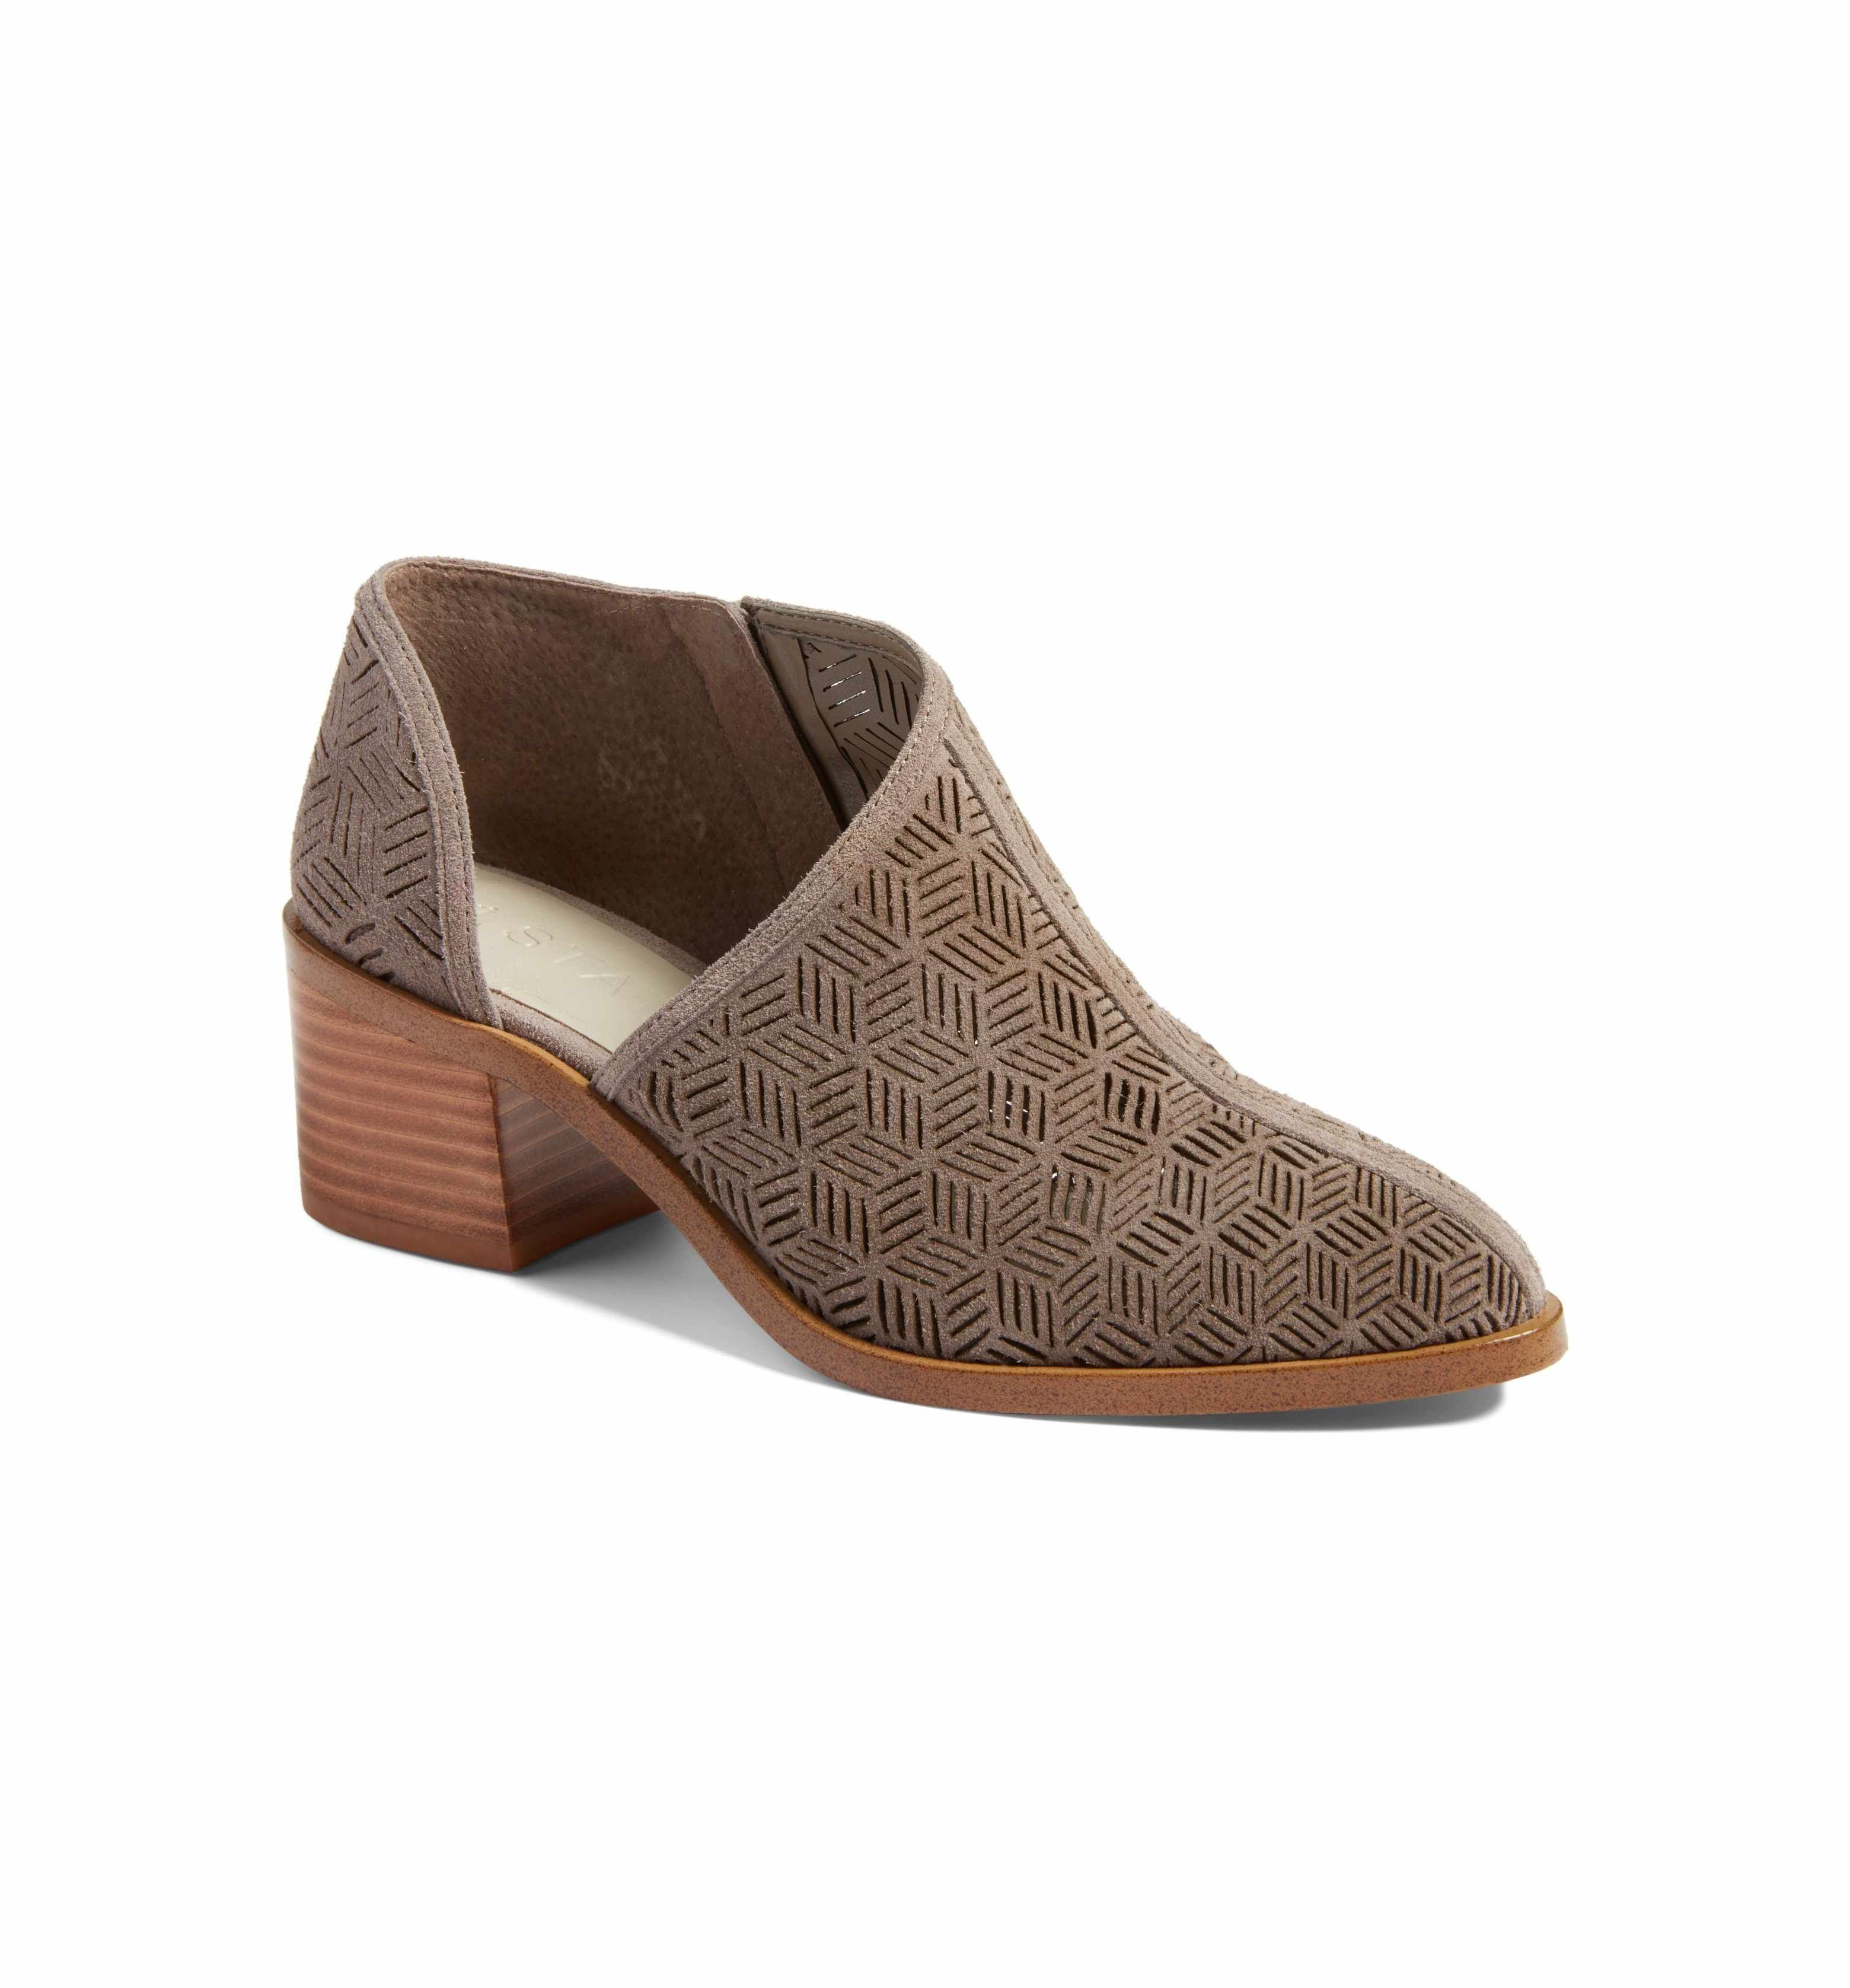 90f4b1795d4 Main Image - 1.STATE Iddah Perforated Cutaway Bootie (Women)